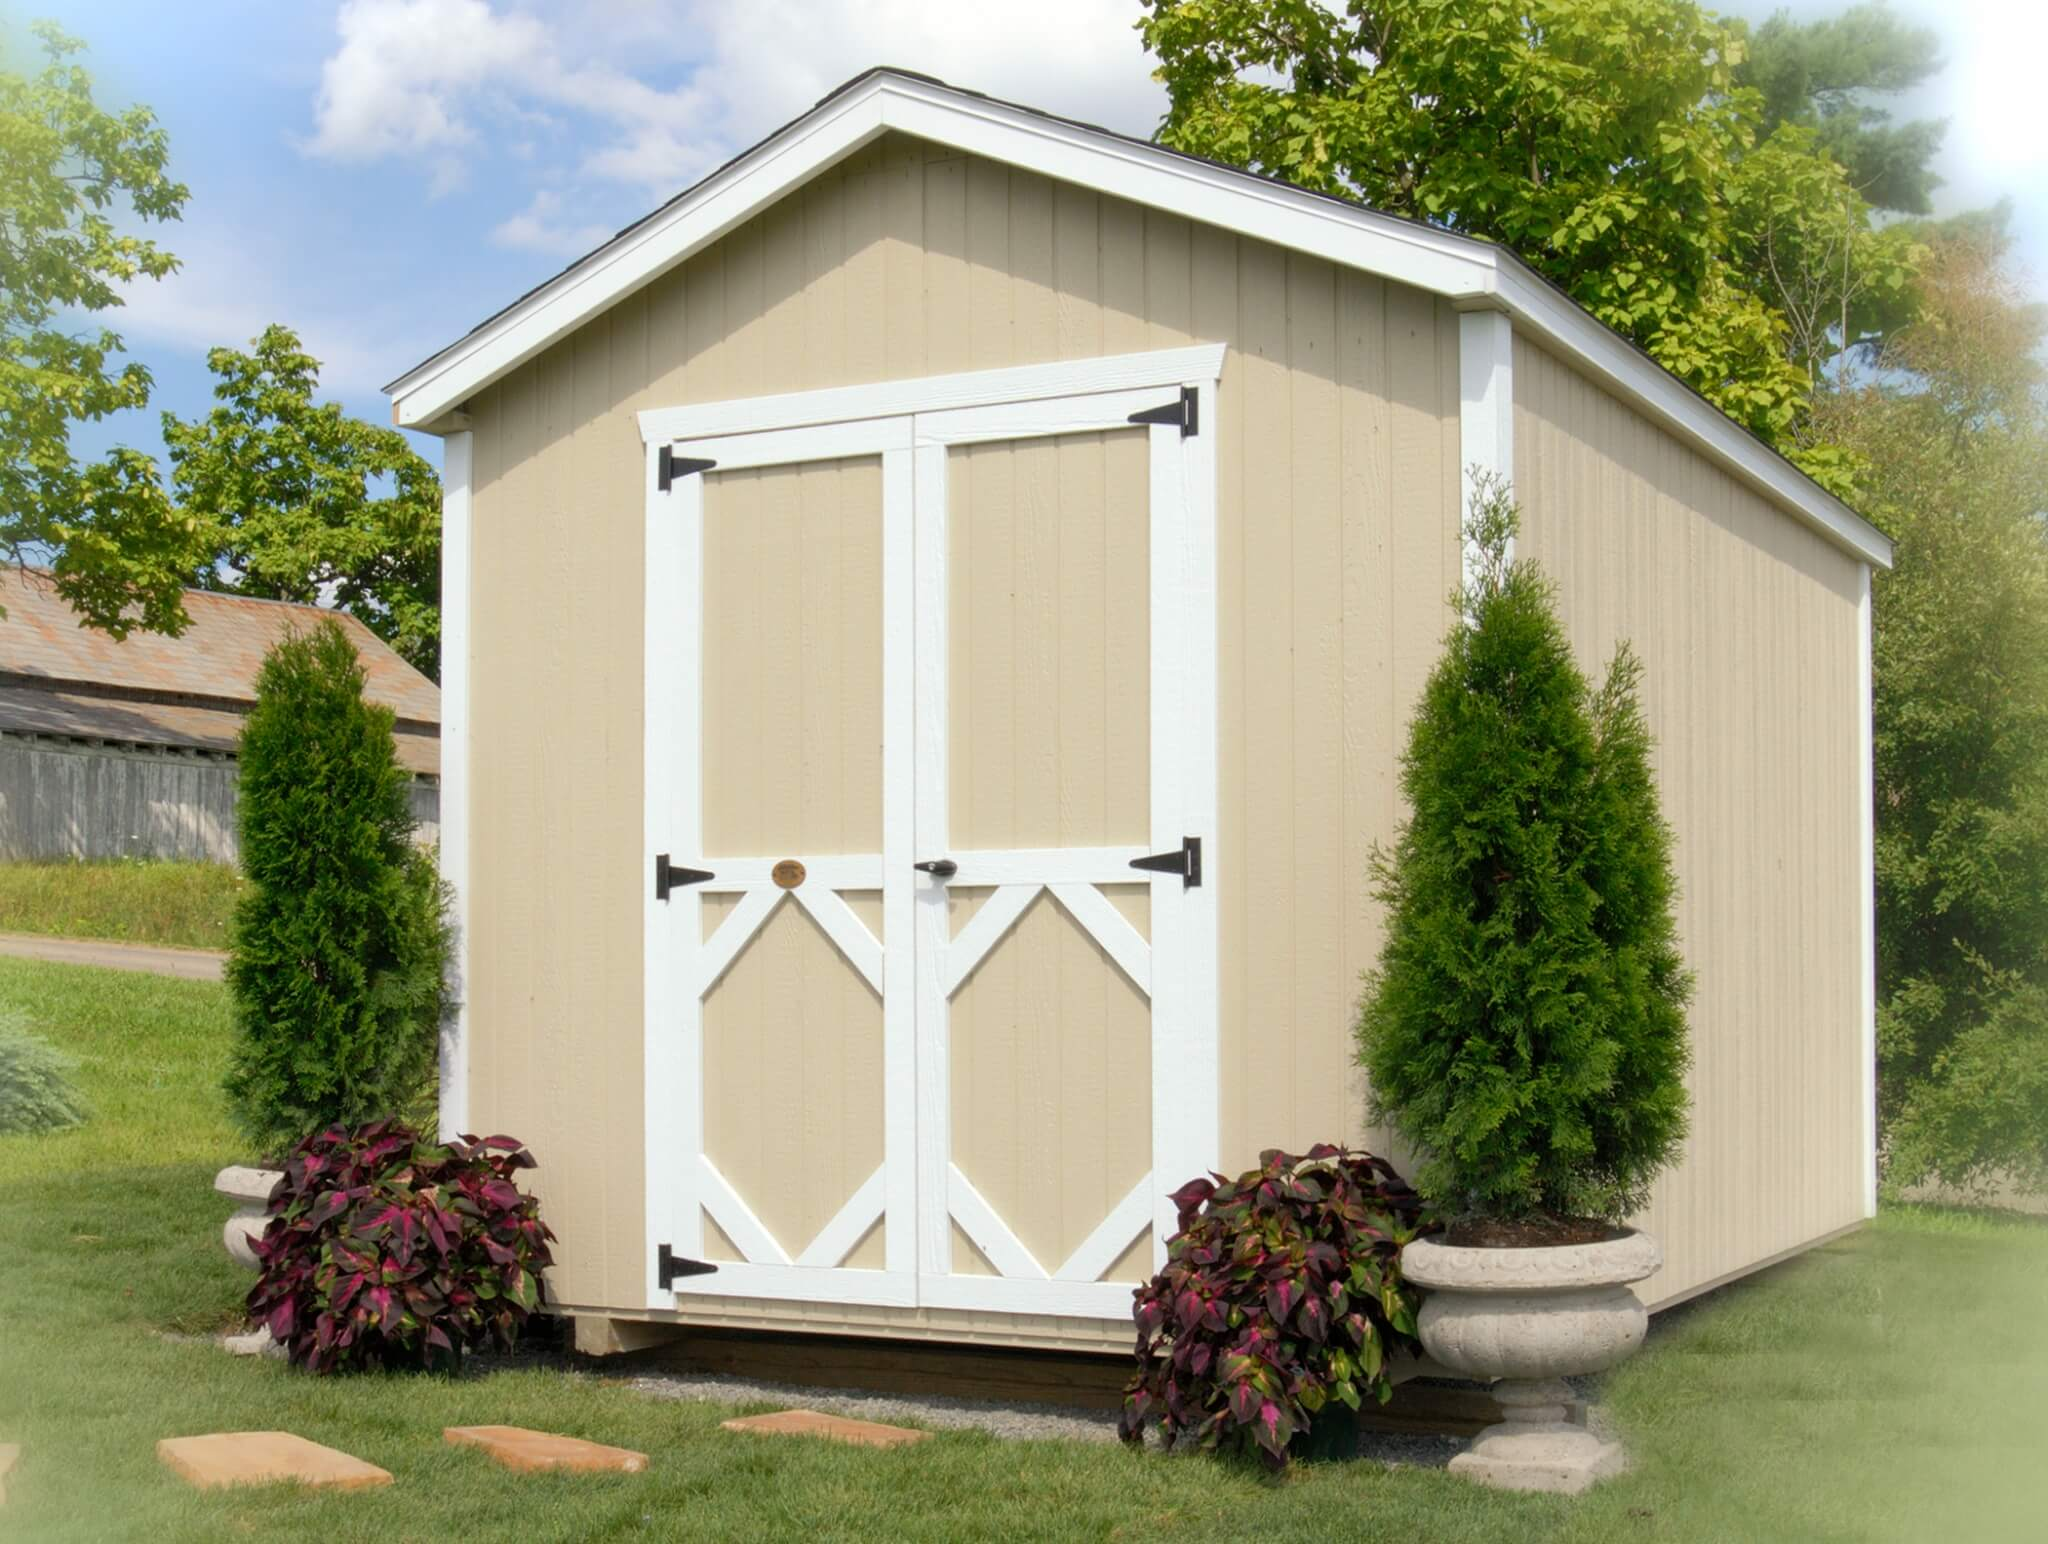 Classic Gable storage shed kit